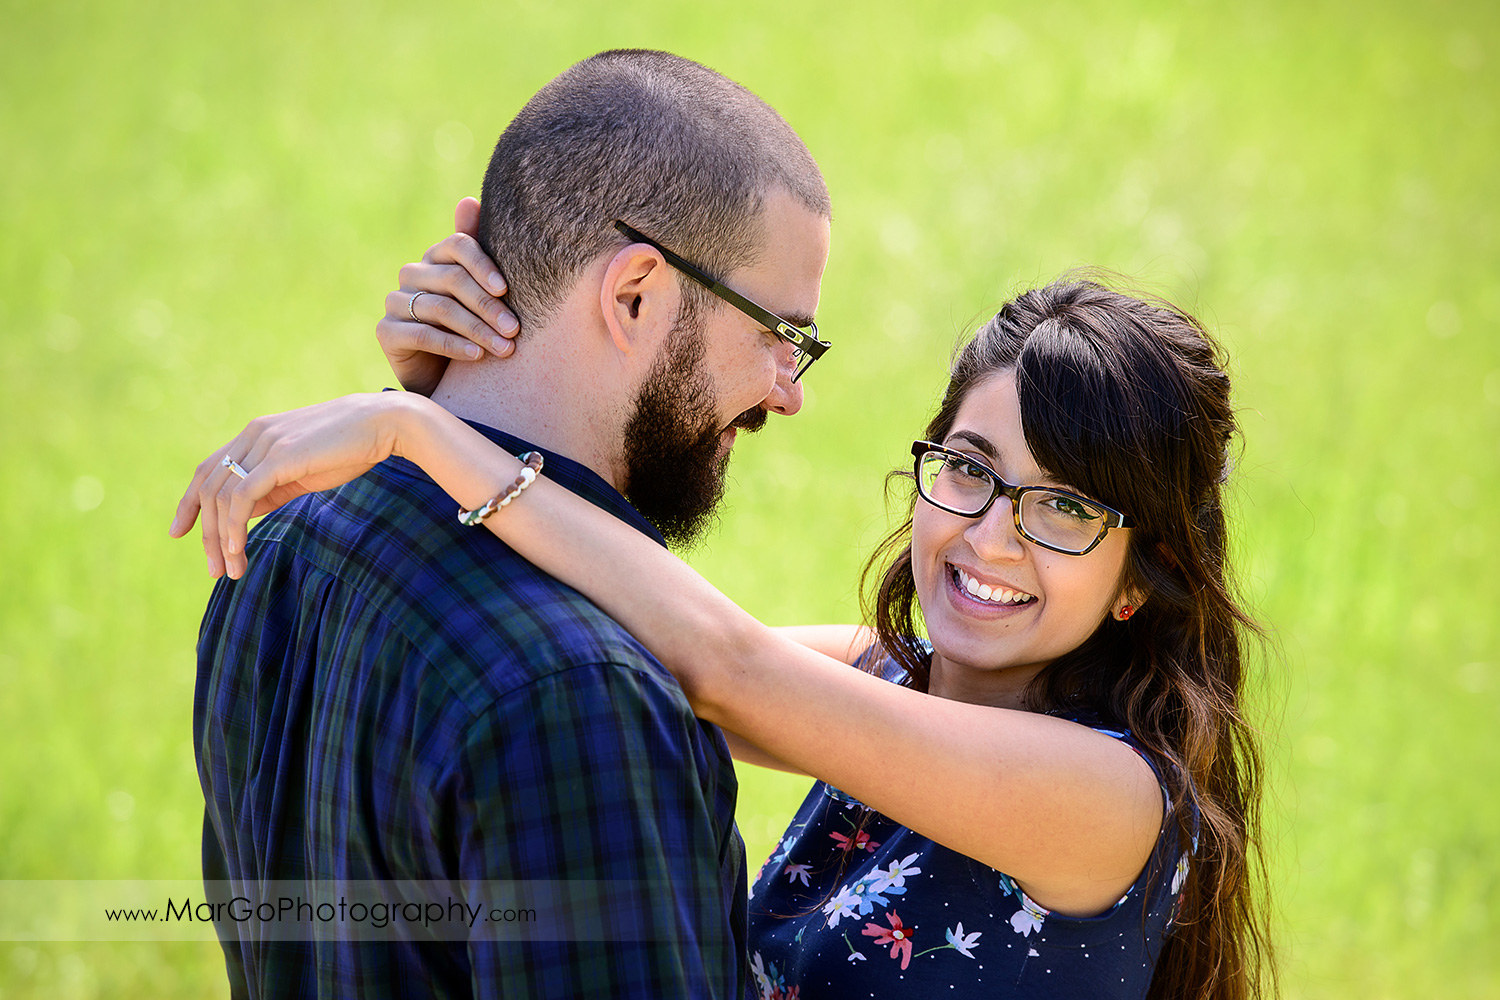 close-up portrait of man in blue shirt looking at woman in blue dress looking into camera on the green grass backround during engagement session at Sunol Regional Wilderness